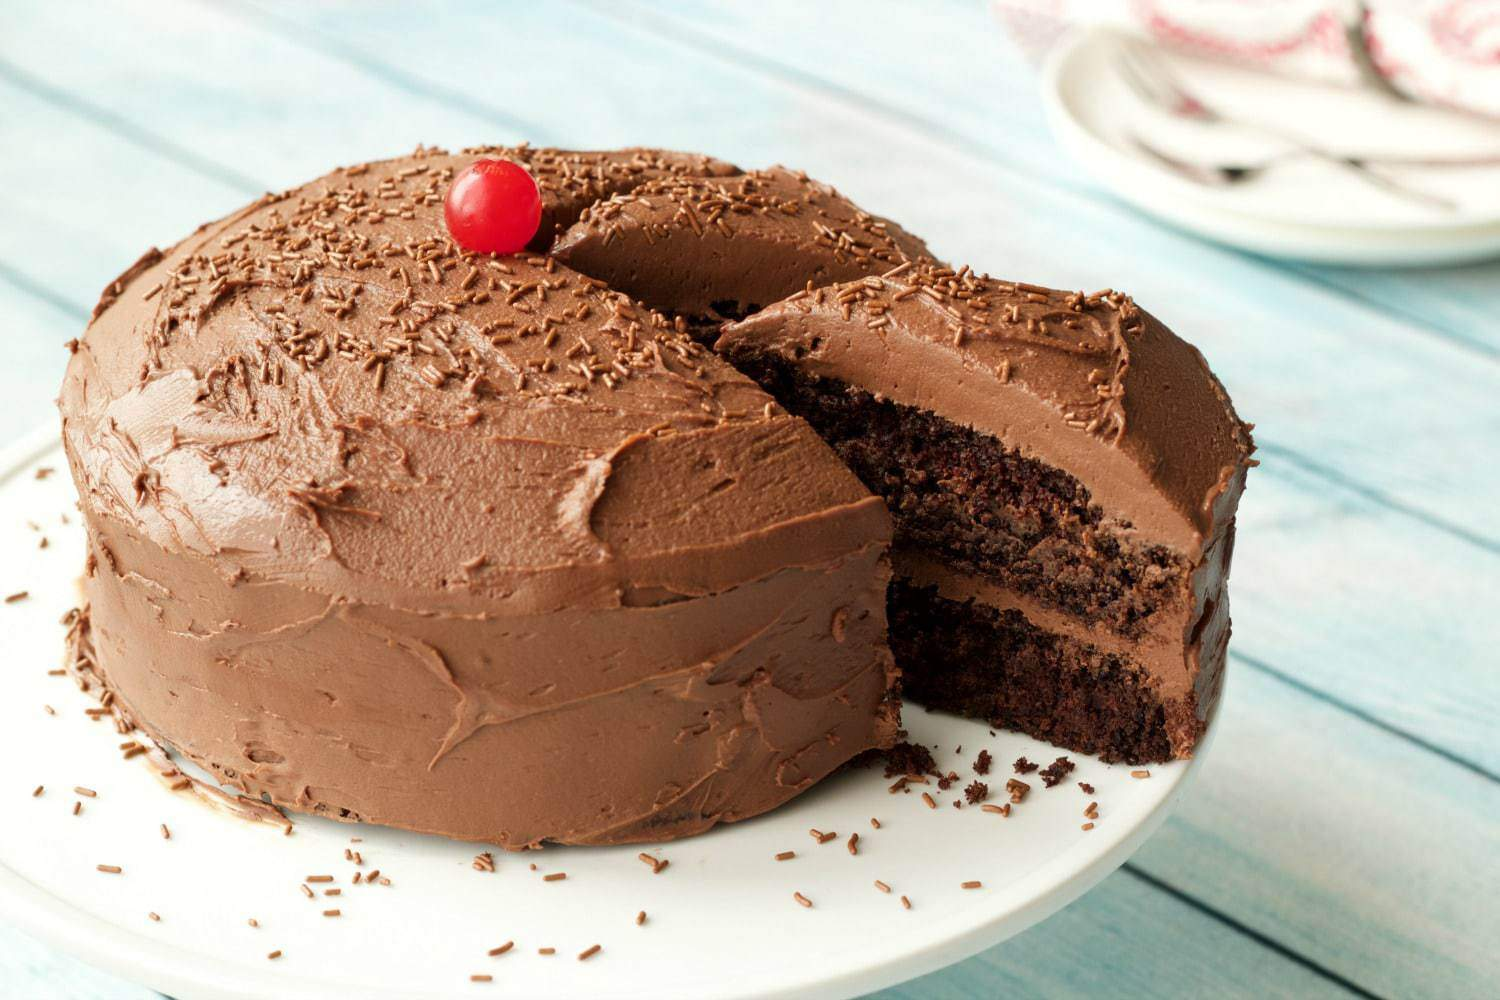 Calories In Chocolate Cake Without Frosting